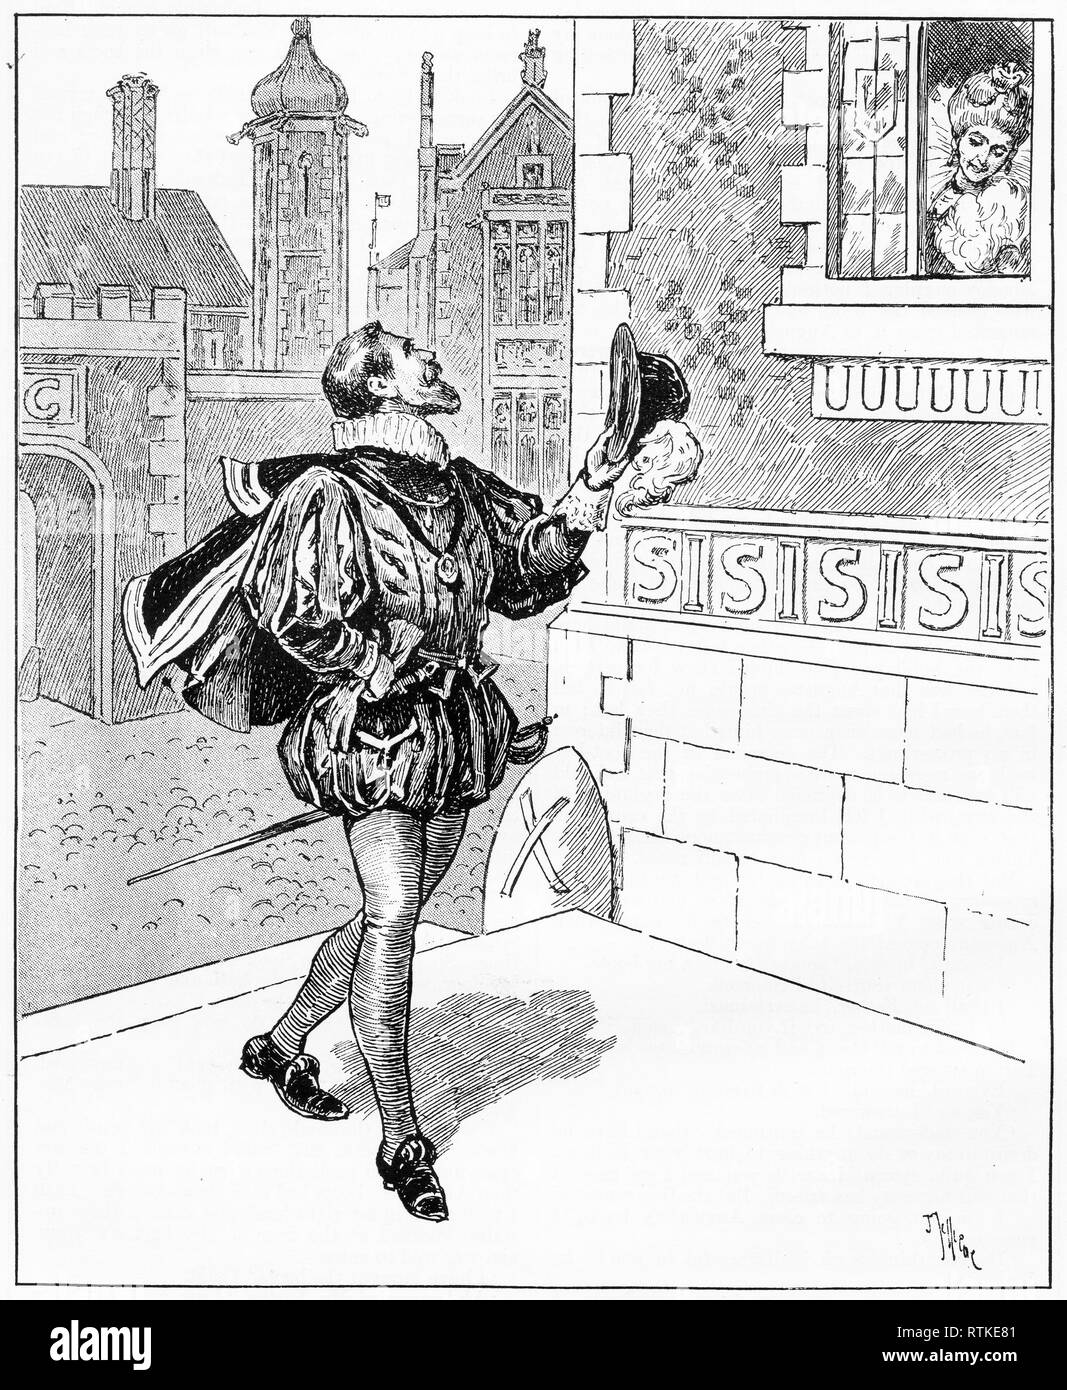 Engraving of a woman looking out her window to a male suitor in the street. From Chatterbox magazine, 1905 Stock Photo